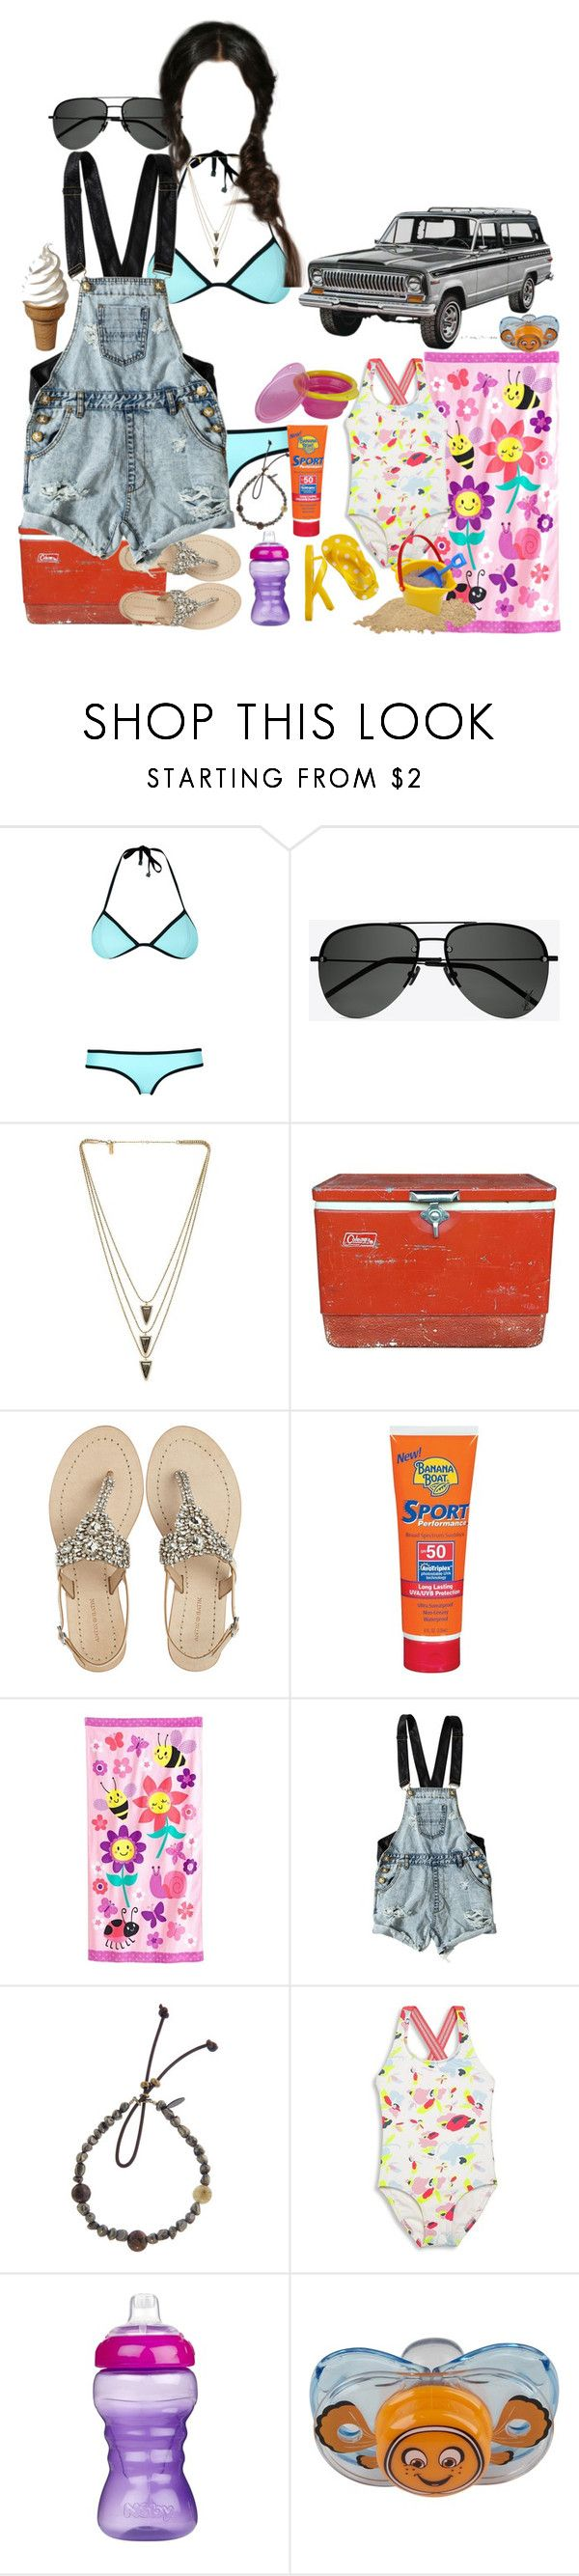 """Day at the Beach"" by werewolf-gurl ❤ liked on Polyvore featuring Triangl, Yves Saint Laurent, Melanie Auld, Coleman, Antik Batik, Banana Boat, Jumping Beans, OneTeaspoon, Catherine Michiels and Heidi Klein"